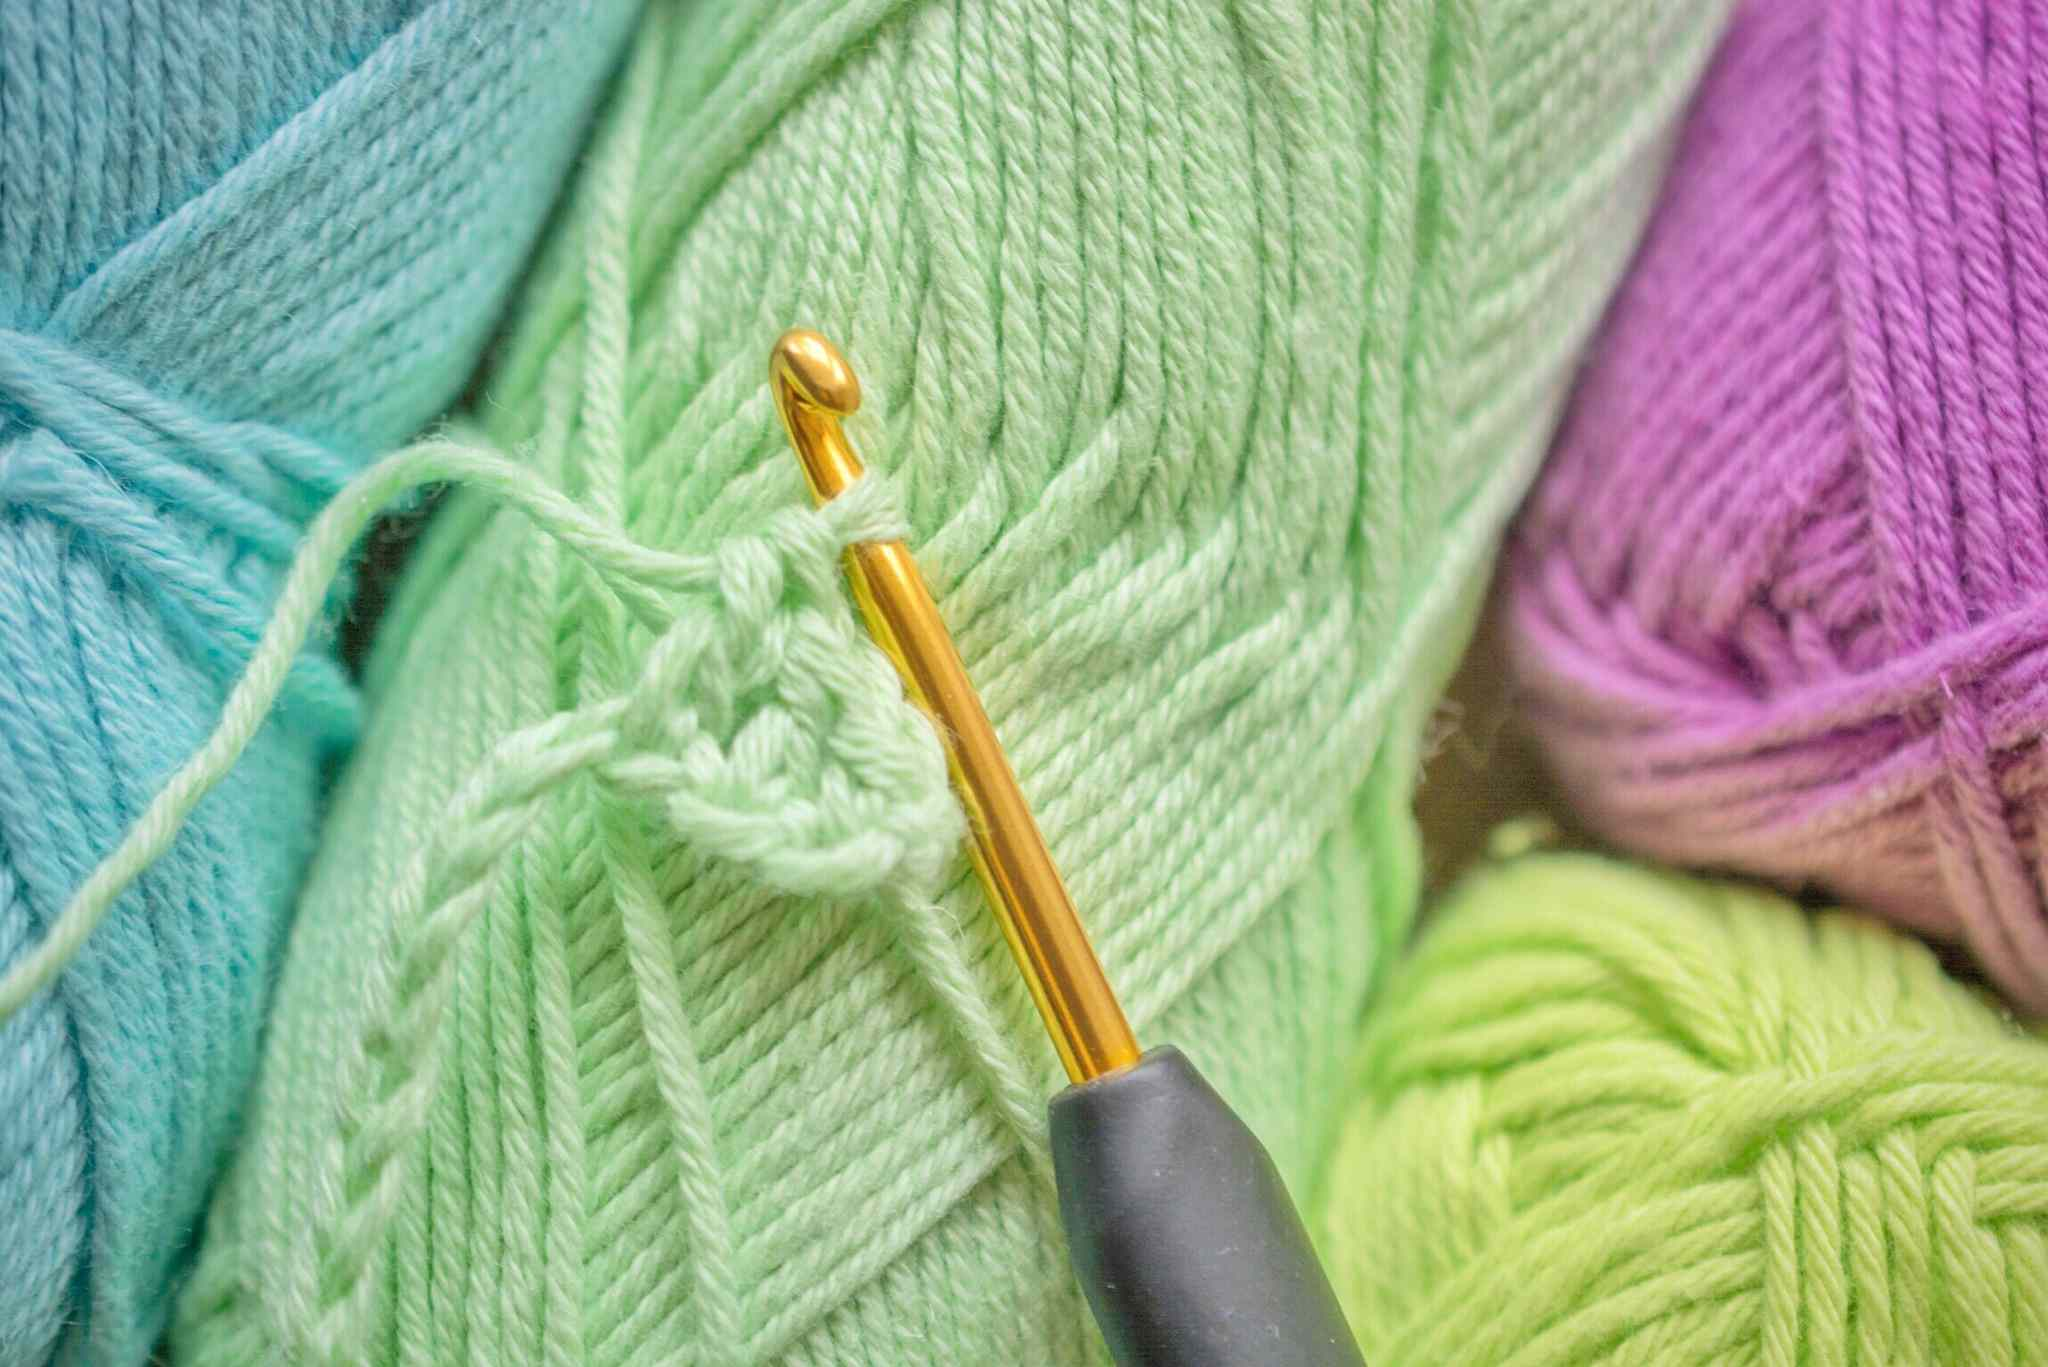 Close-Up Of Crocheting And Wool